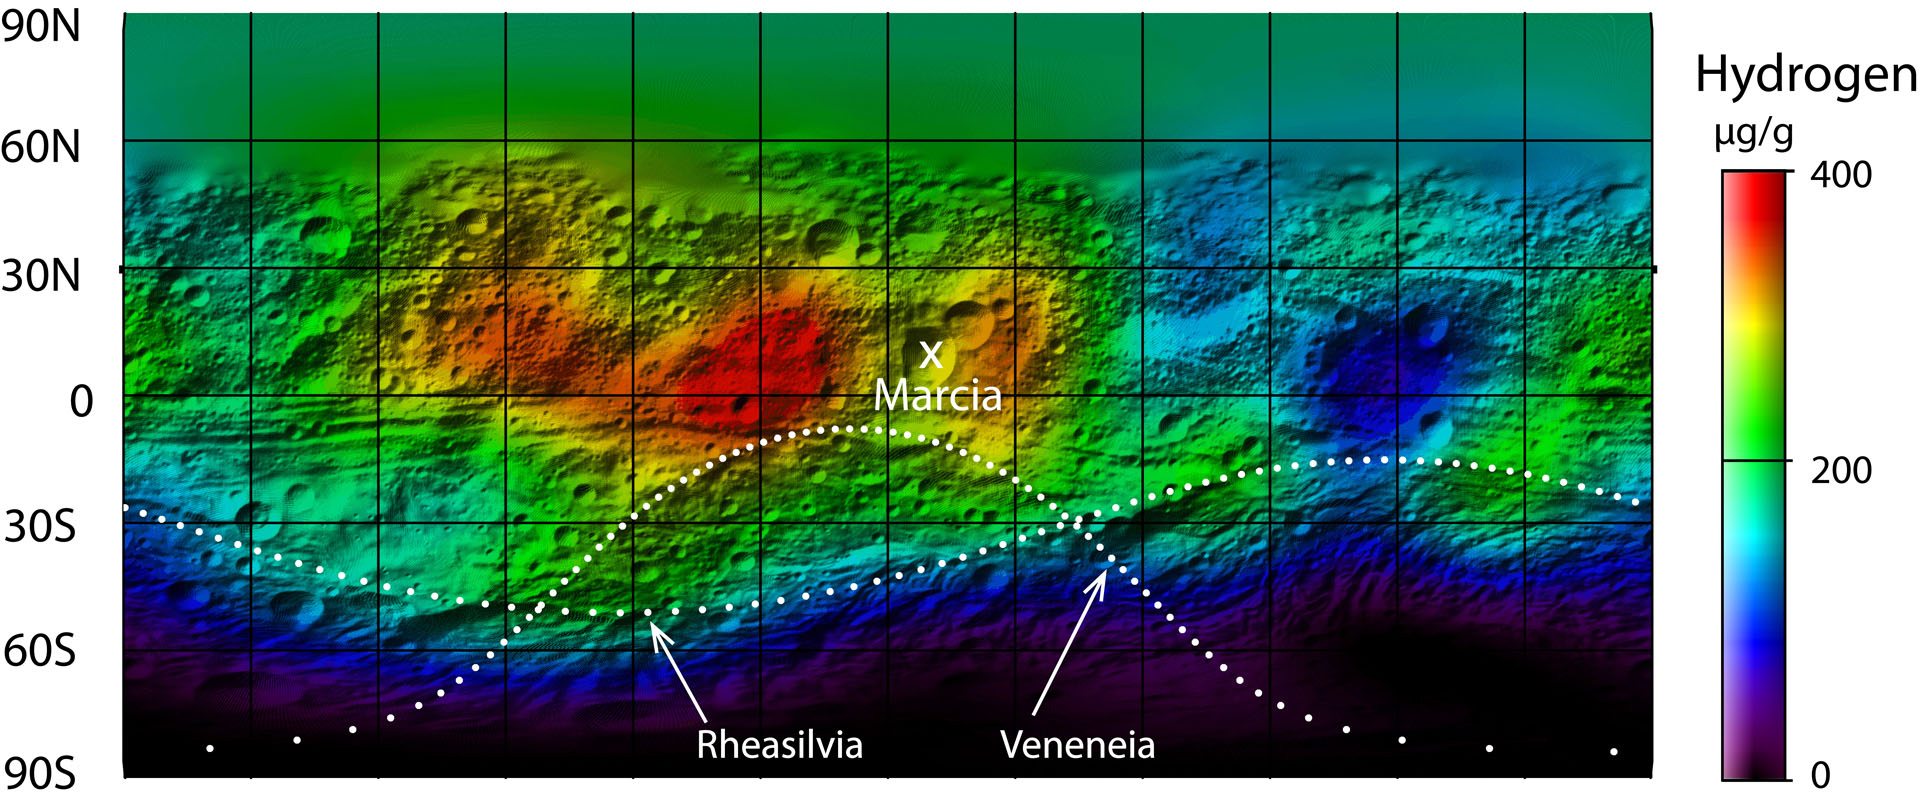 This map from NASA's Dawn mission shows the global distribution of hydrogen on the surface of the giant asteroid Vesta. Image credit: NASA/JPL-Caltech/UCLA/PSI/MPS/DLR/IDA